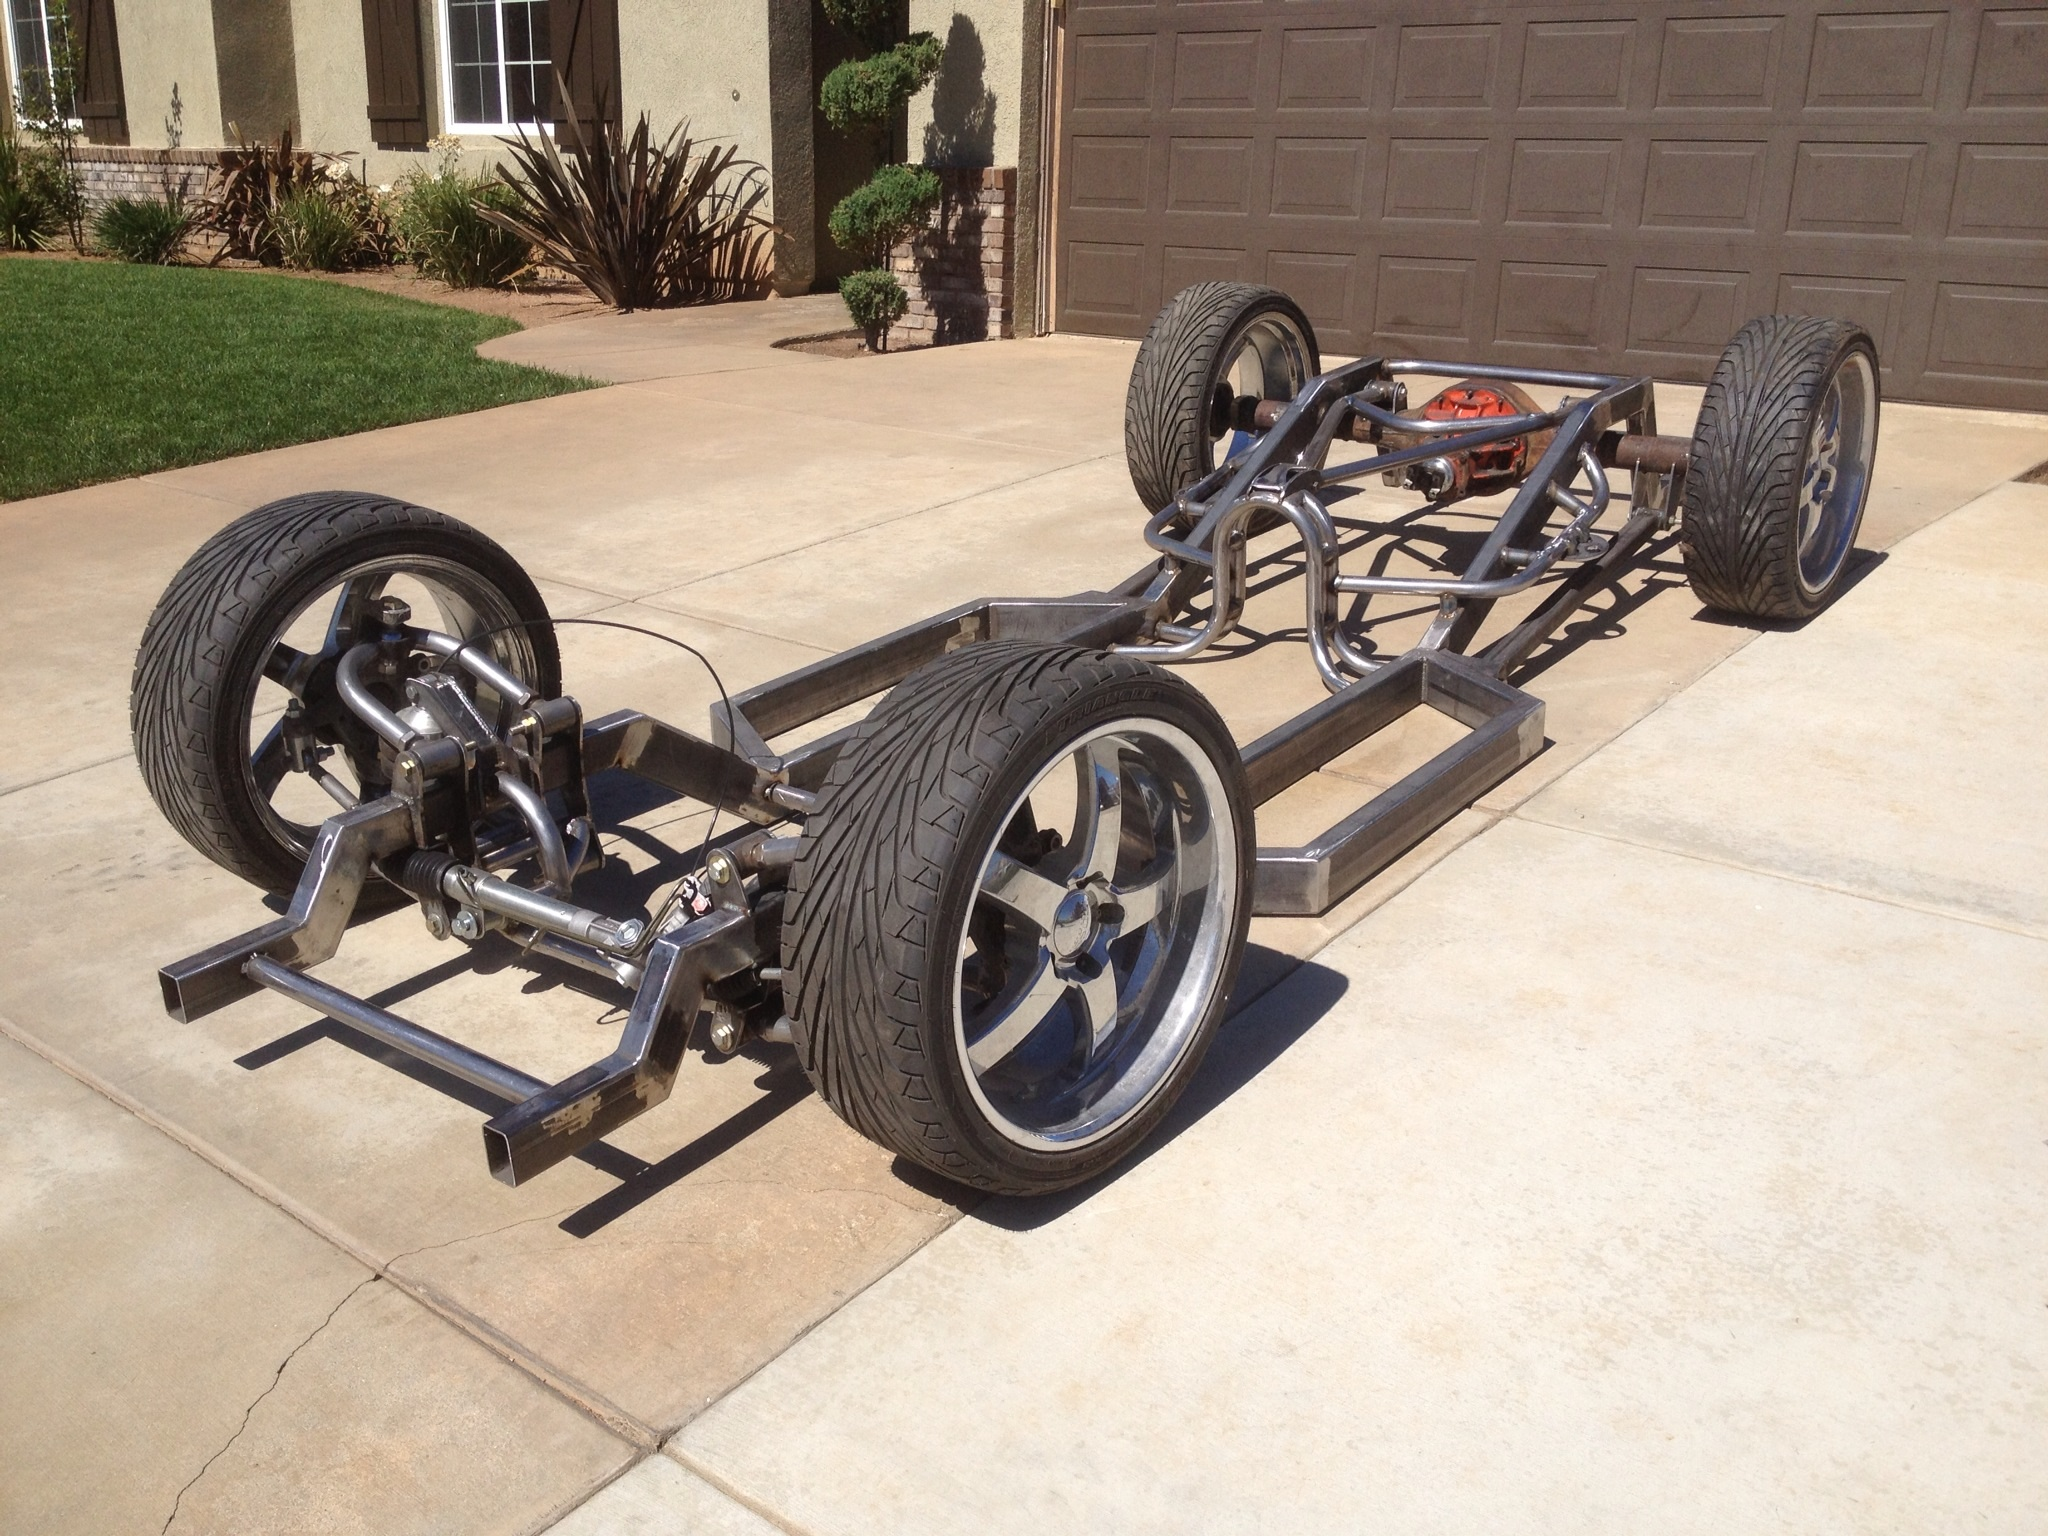 62 Ford F100 Unibody Ecoboost Build 1955 Suspension Swap Attached Images